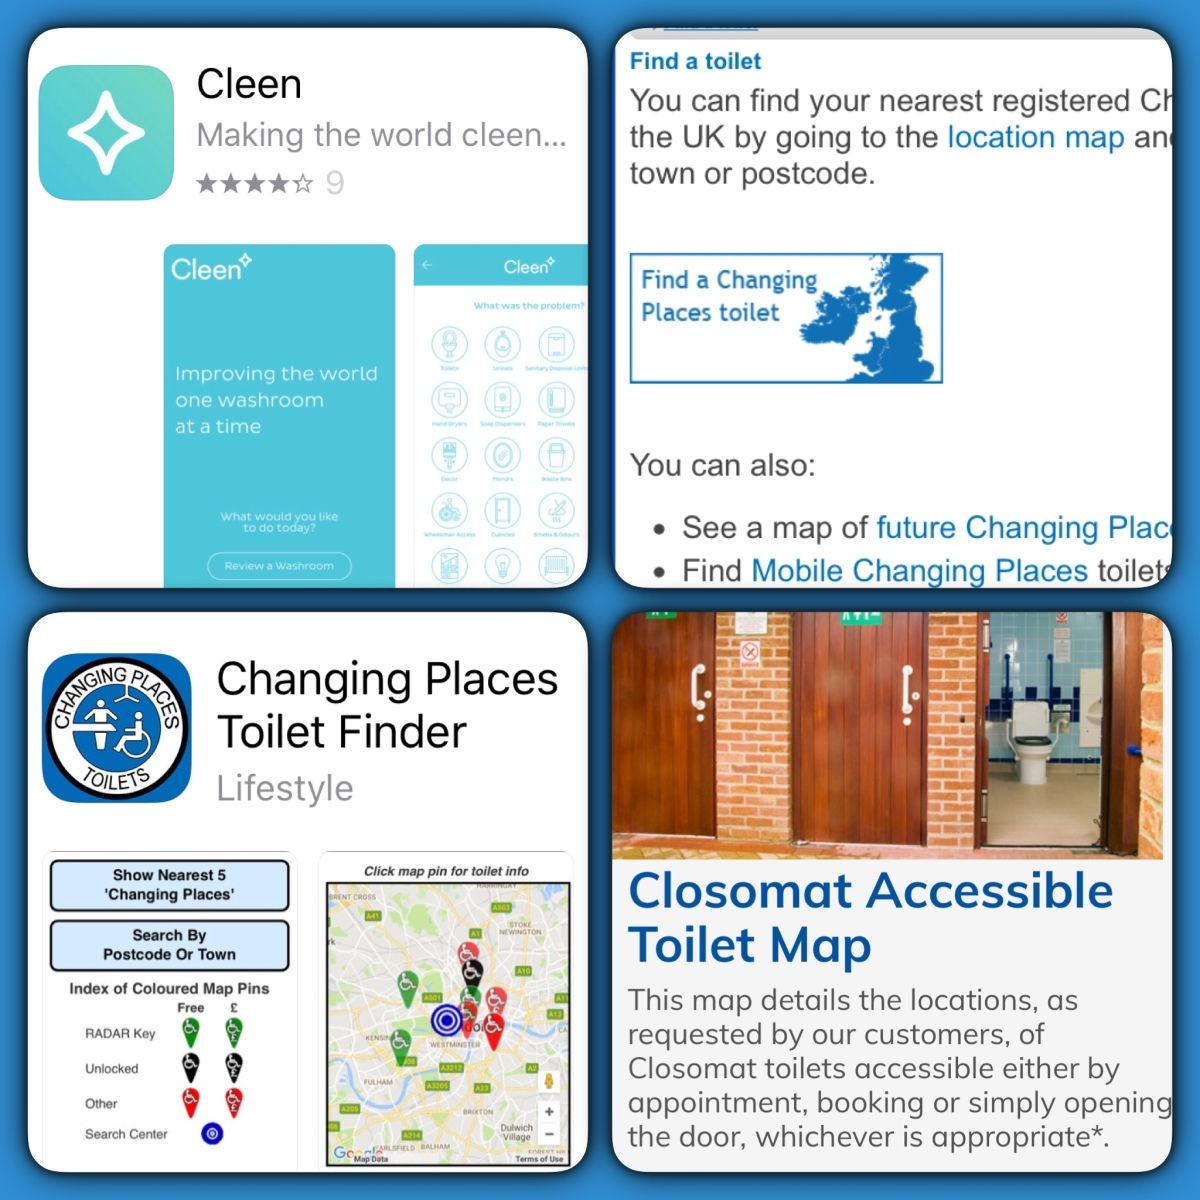 Toilet finding/rating Apps – The world of accessible toilets